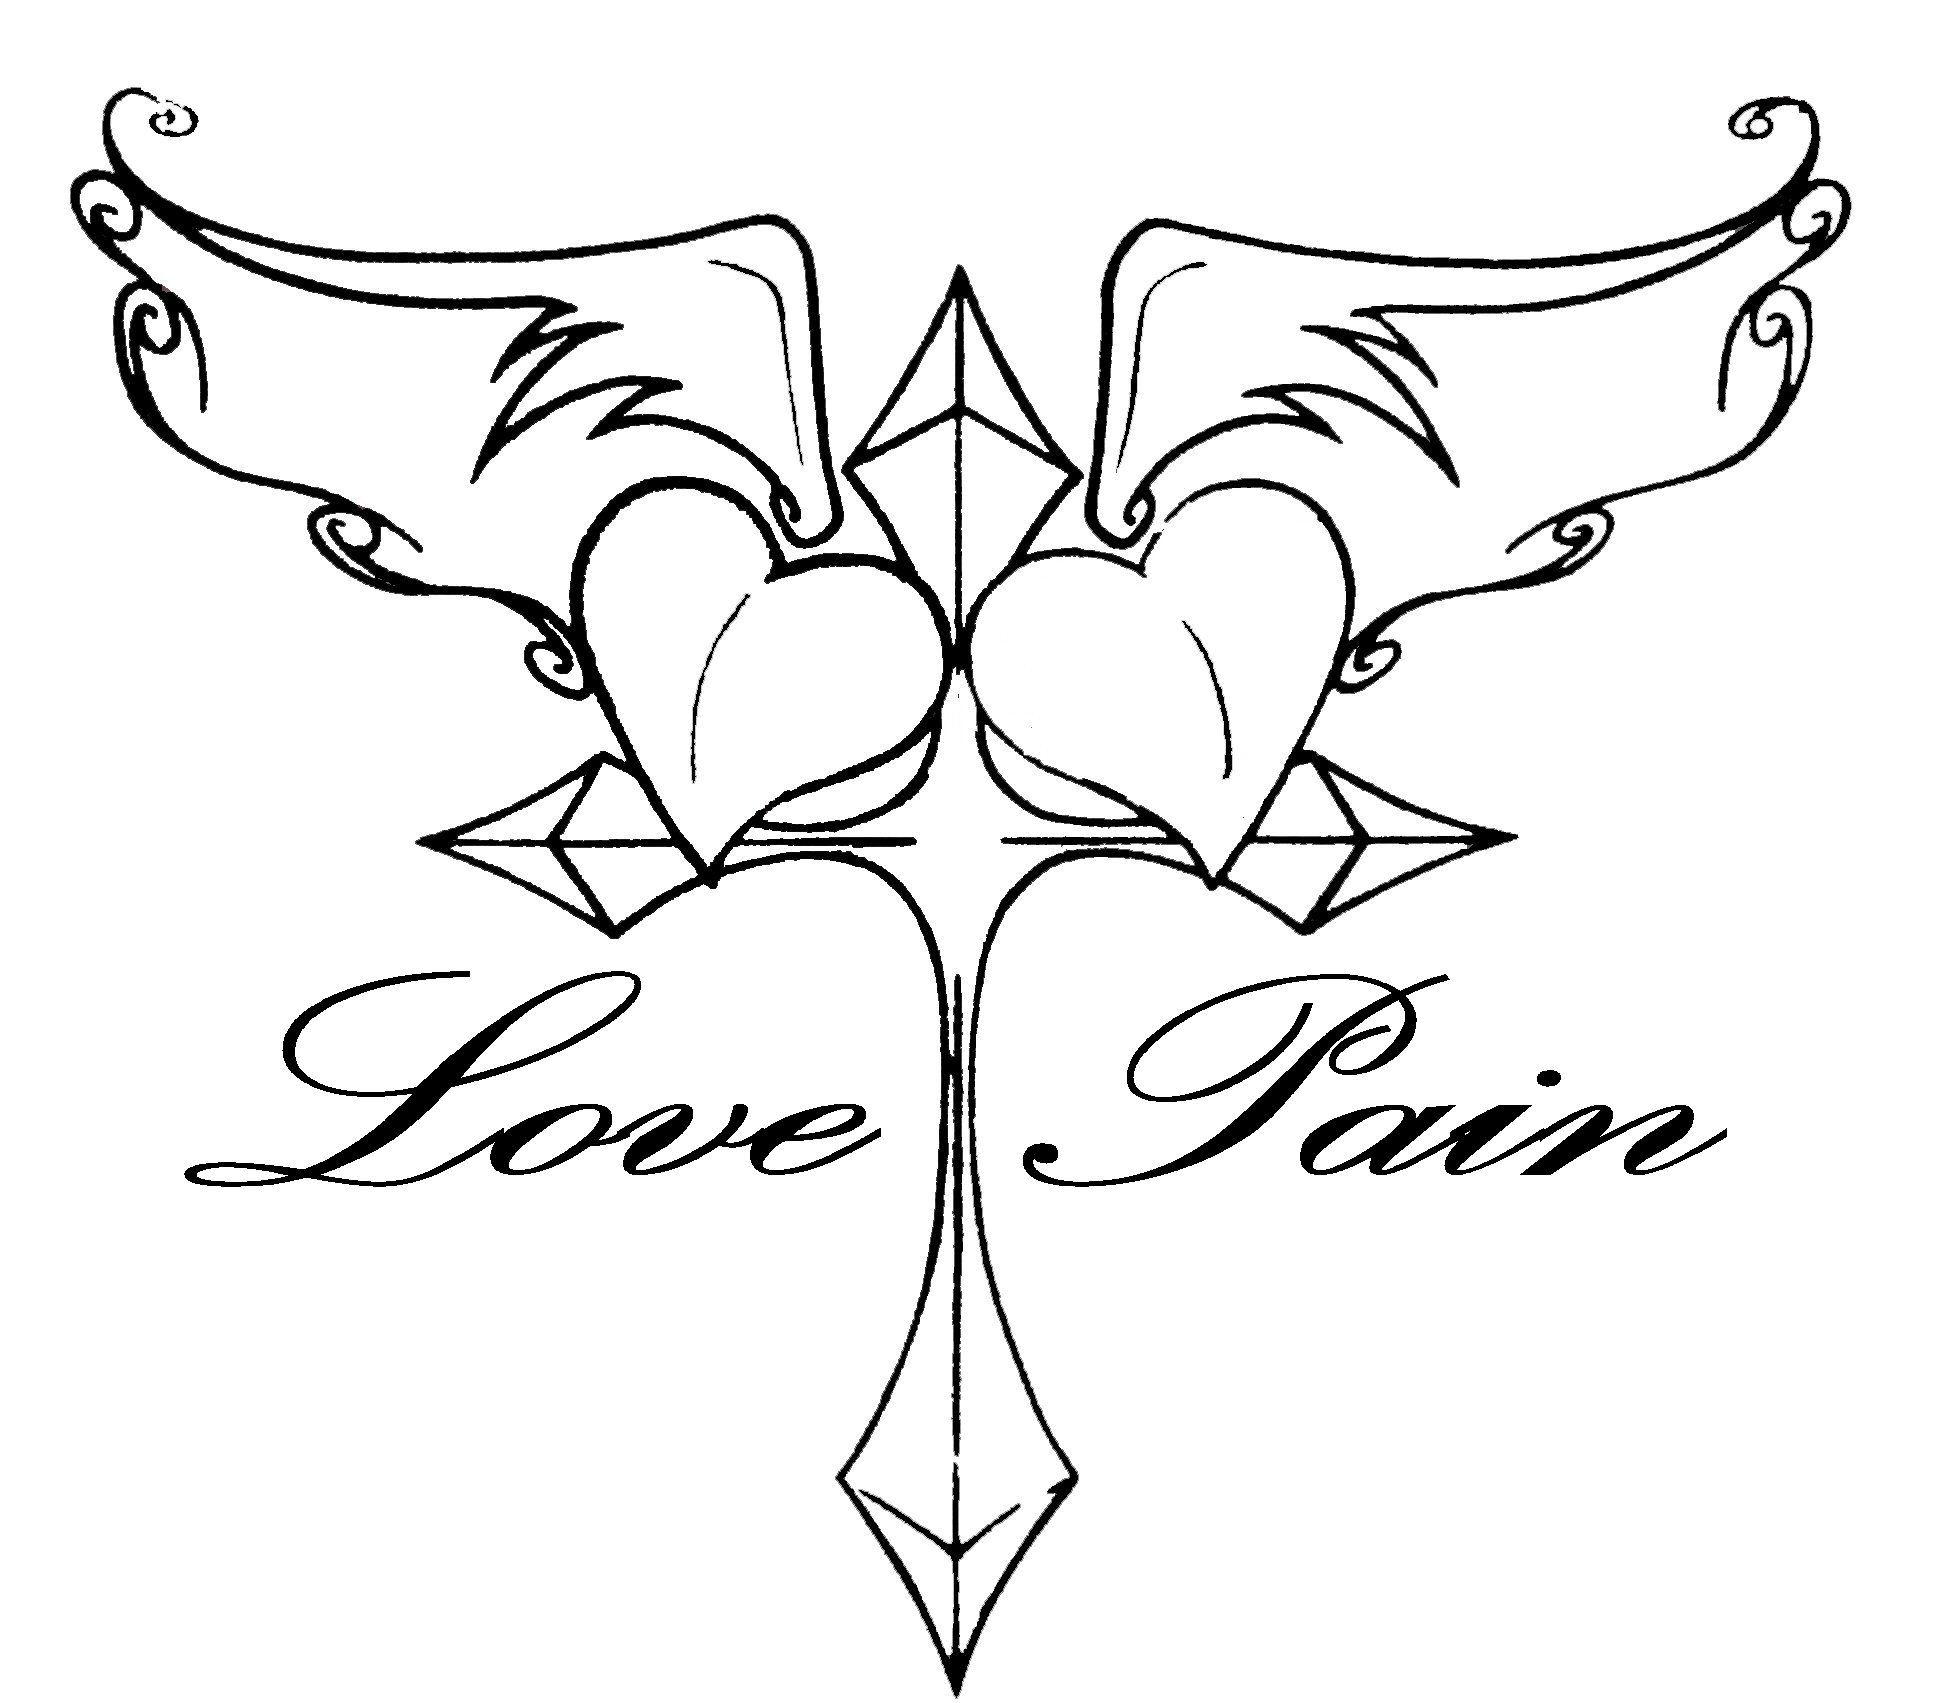 Dagger tattoo 467 Love tattoo design art flash pictures images Incoming search terms:love designslove tattoo designslove tattoo flashlove tattoos arttattoo design searchtattoos love designs